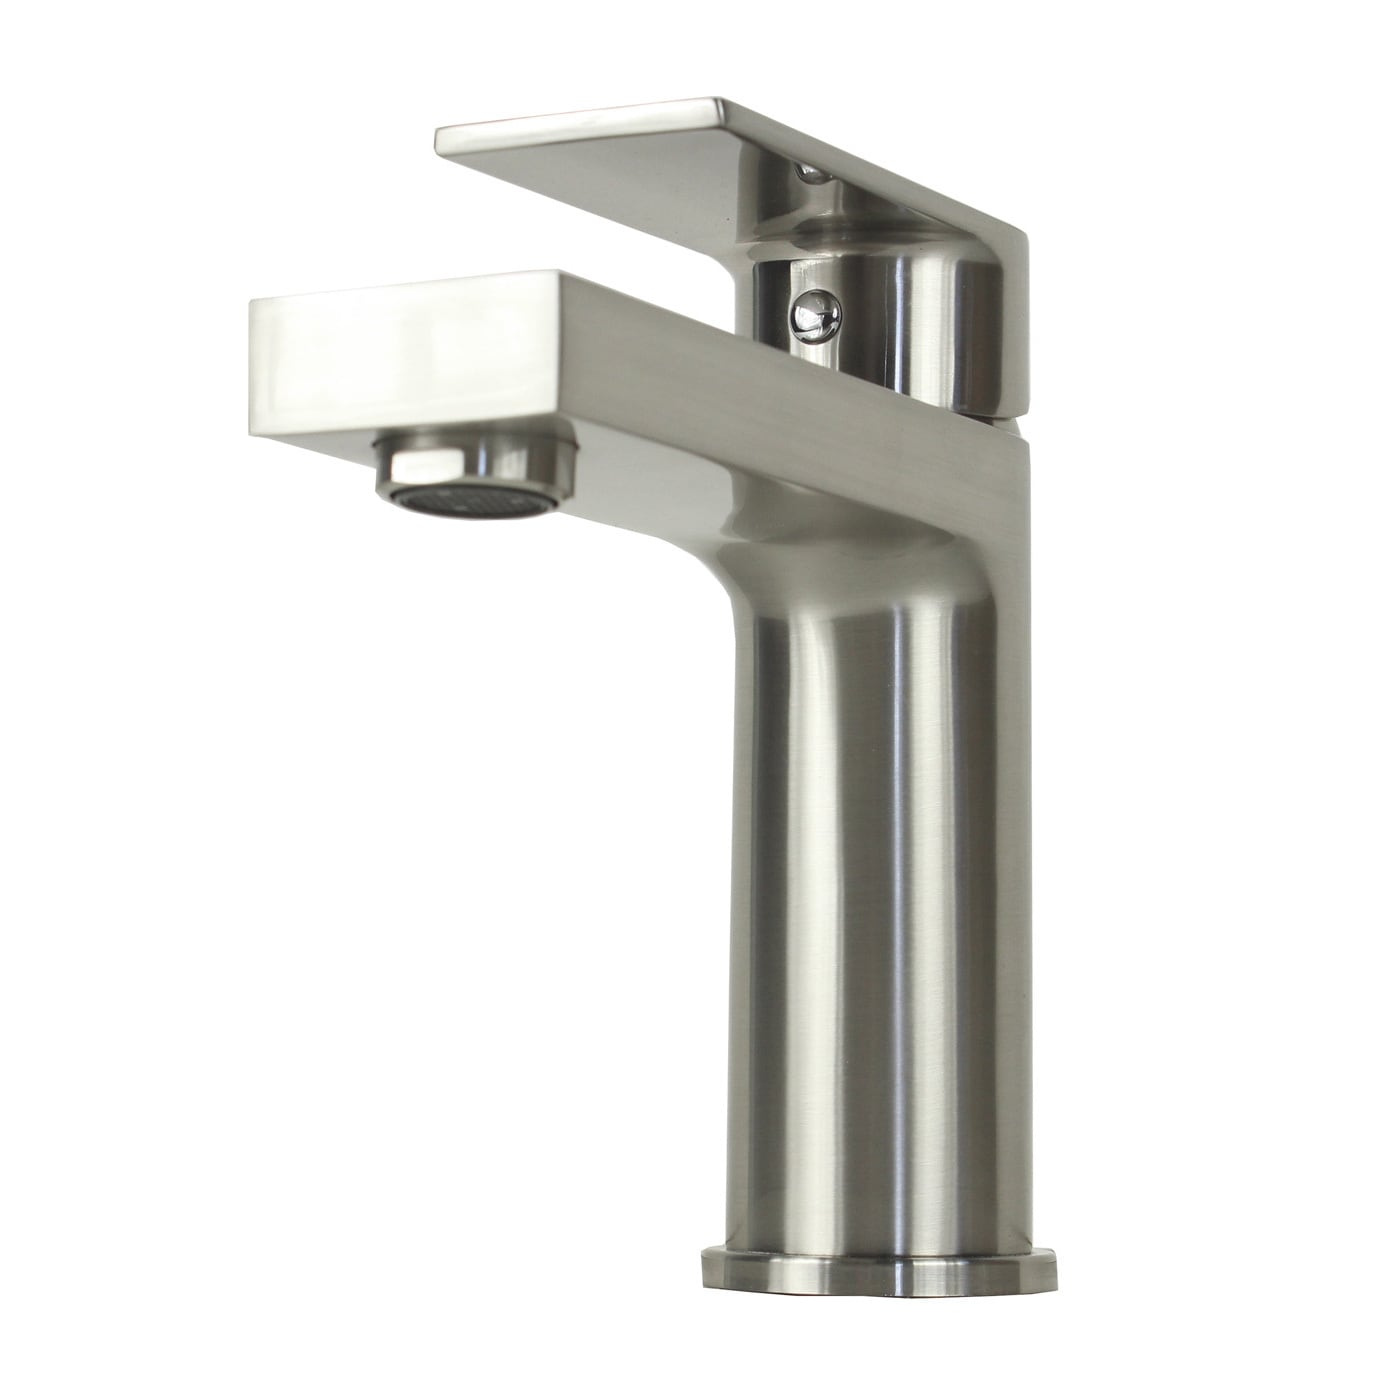 Anna Style Brushed Nickel Stainless Steel Lavatory Faucet - Free ...